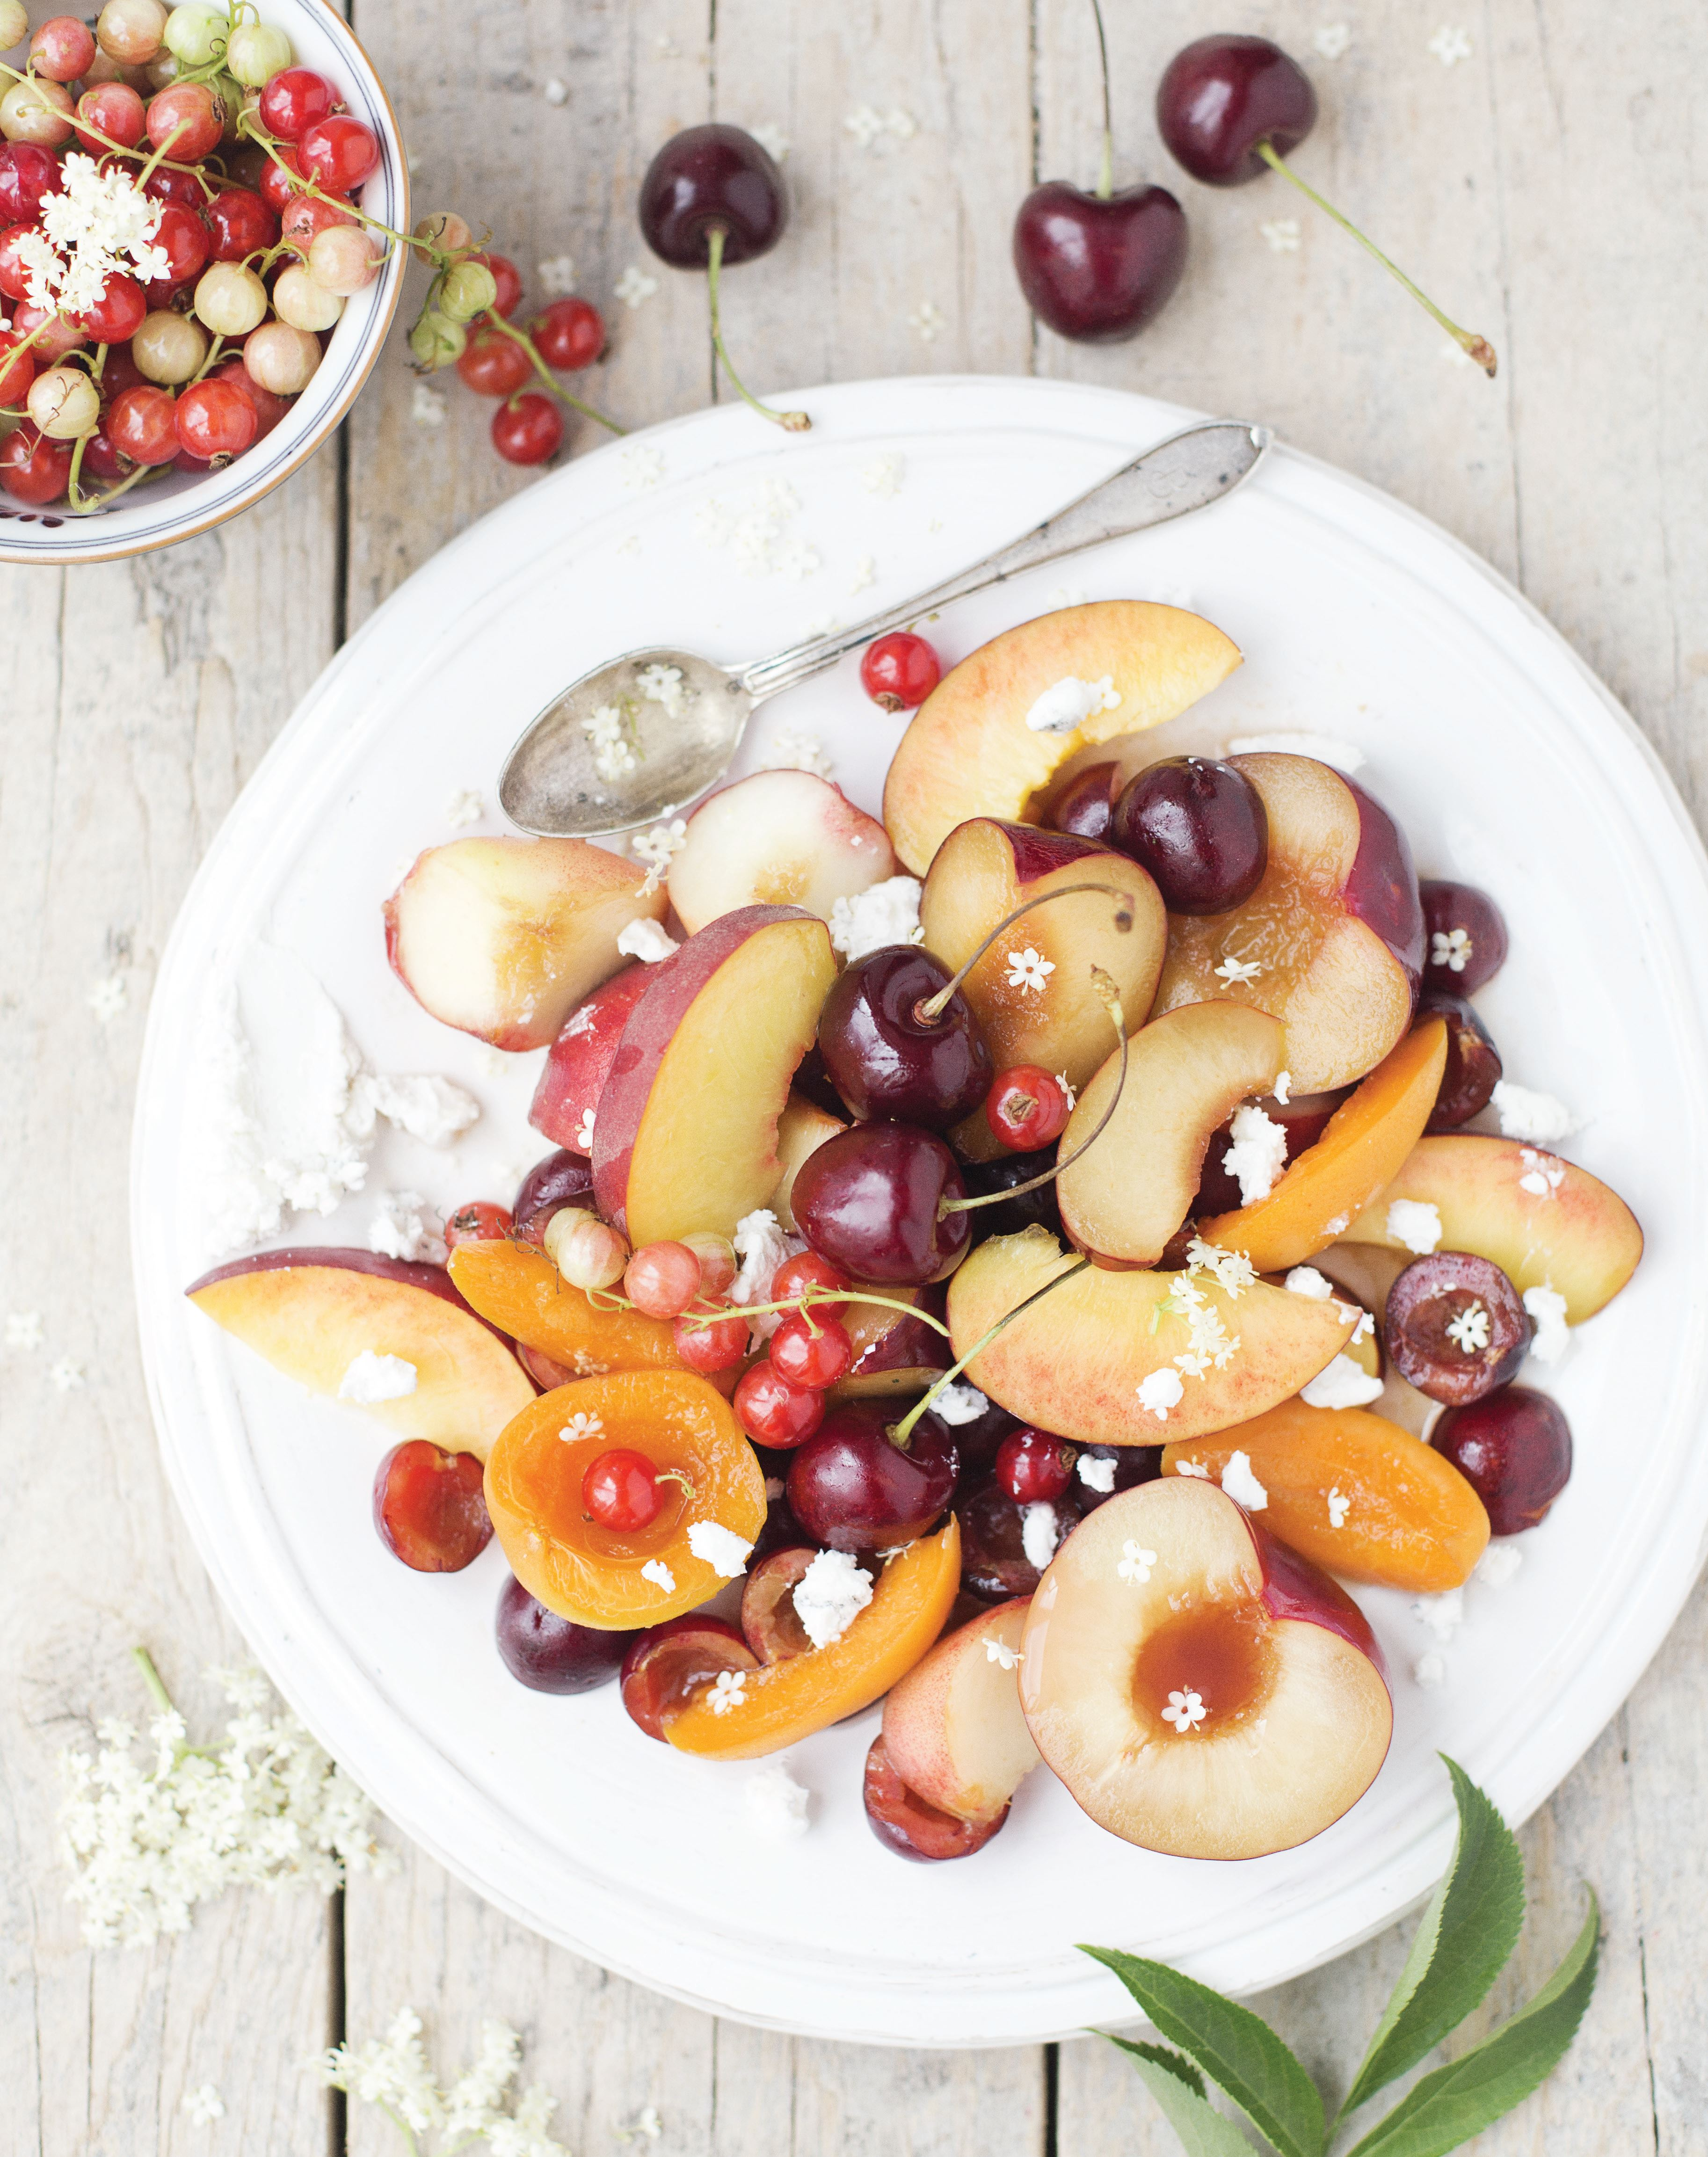 Stone fruit salad with creamy goat's cheese